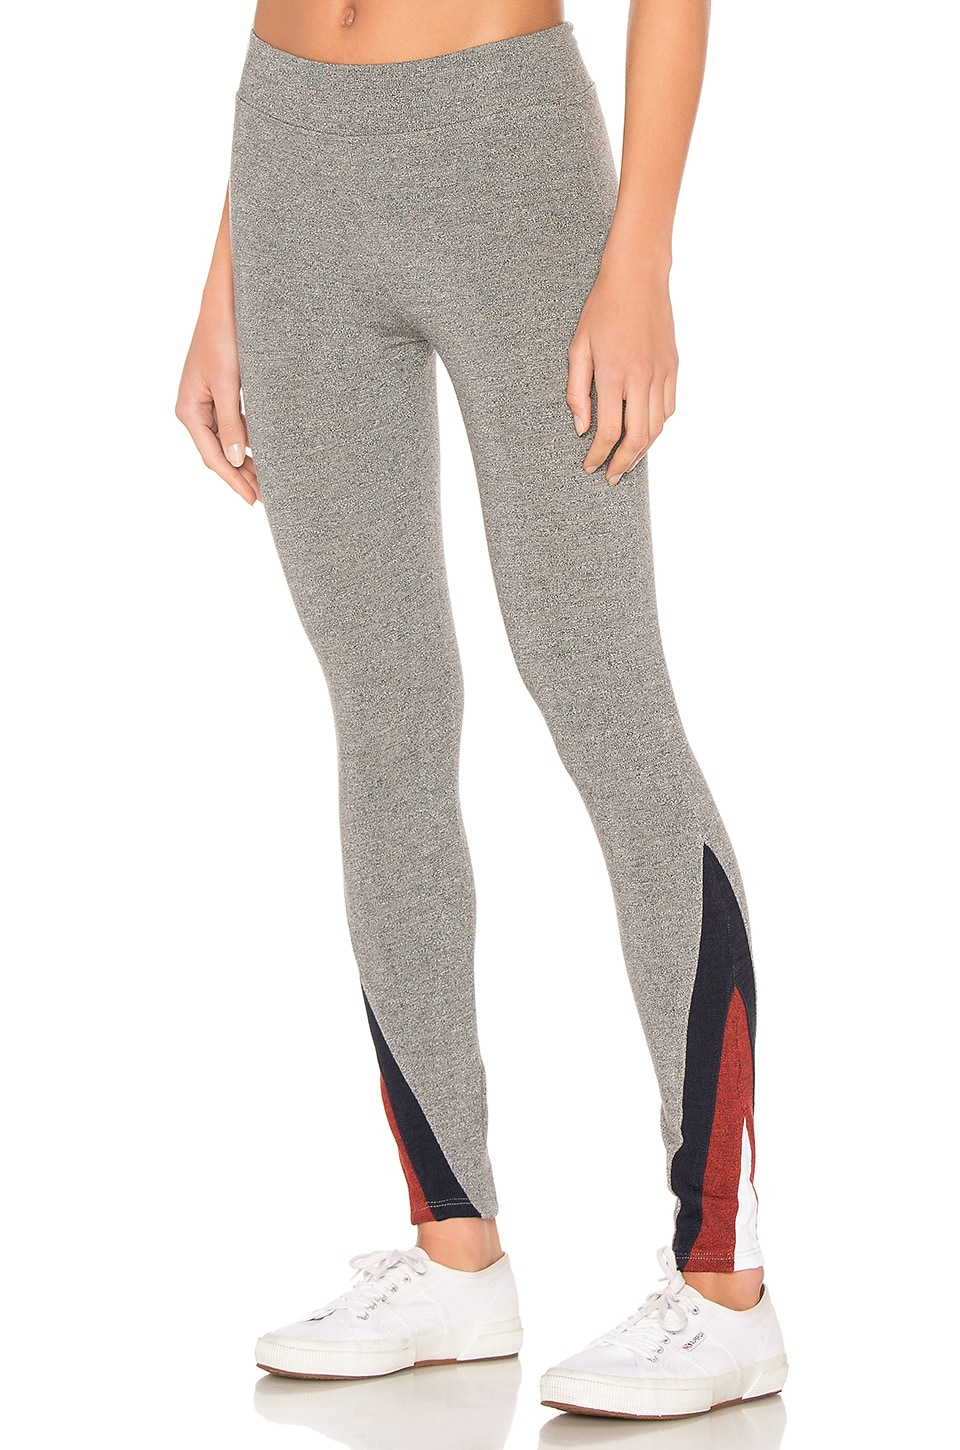 SUNDRY Color Inset Yoga Legging in Heather Gray